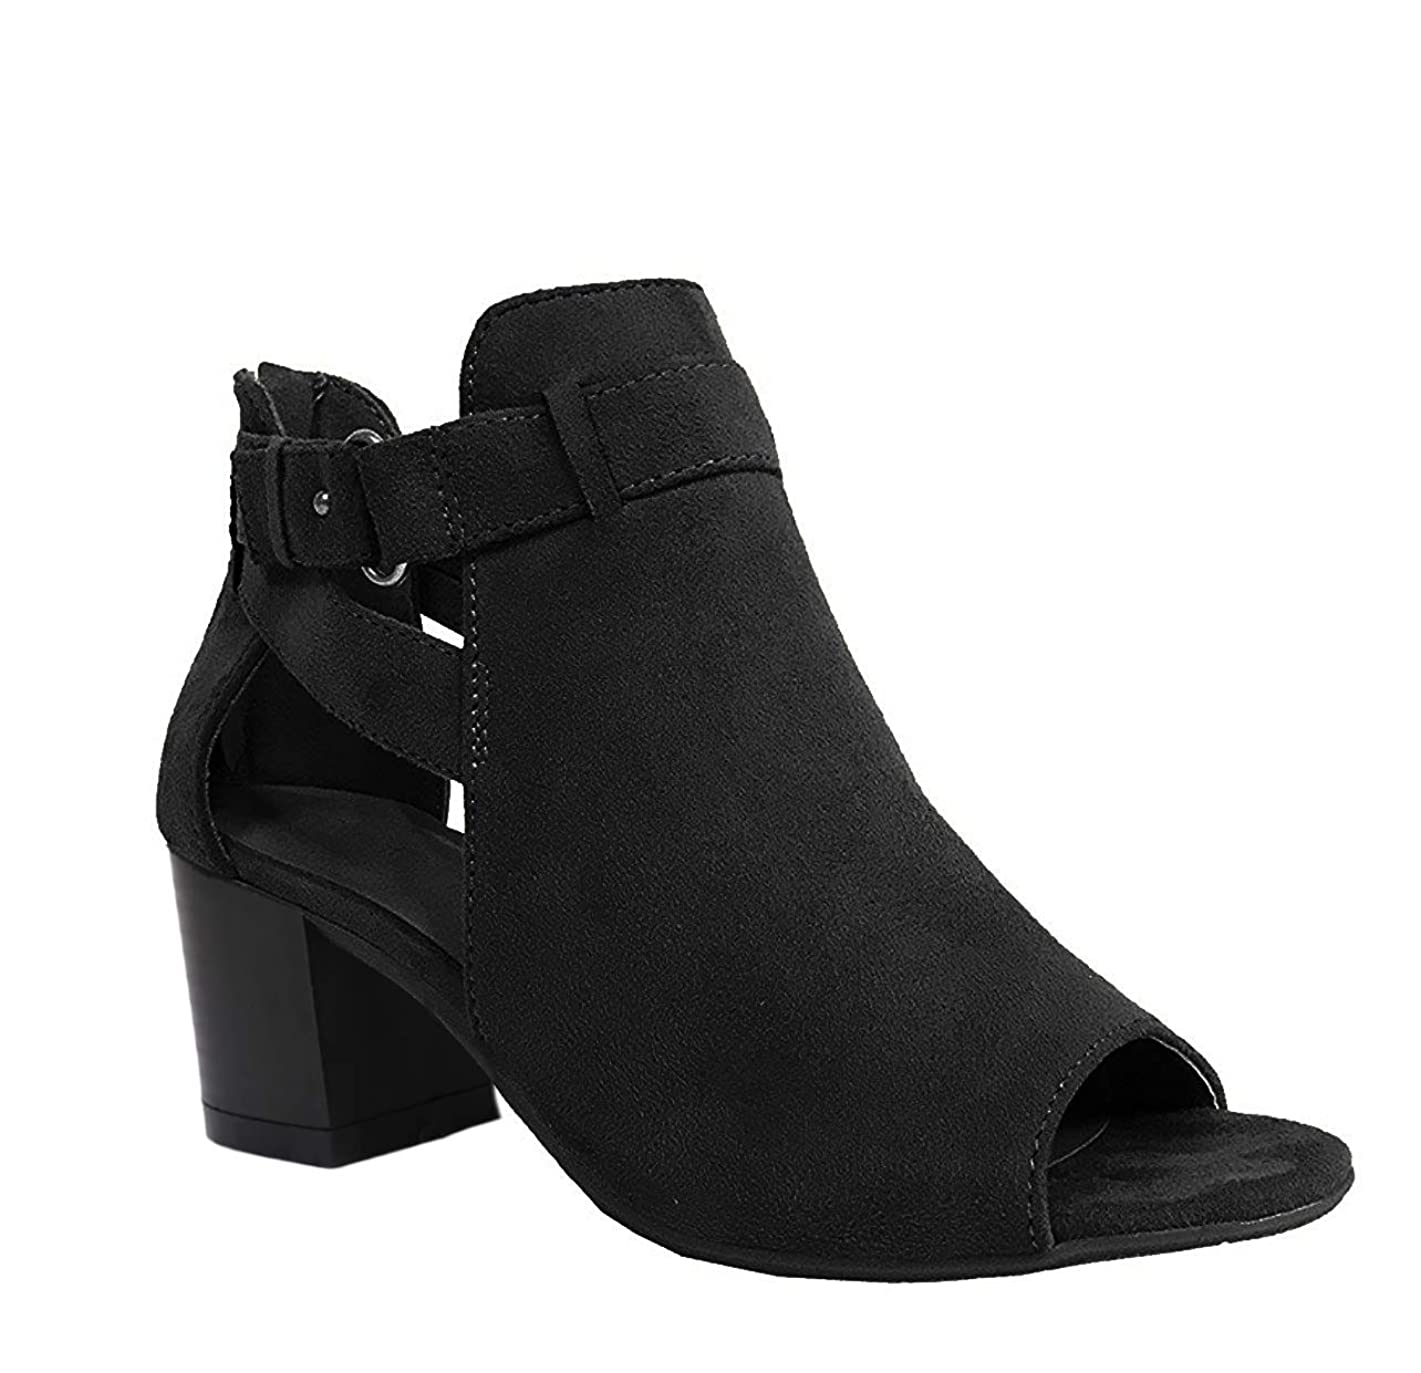 Womens Cutout Bootie Sandals Open Toe Stacked Heel Ankle Strap Chunky Heeled Shoes